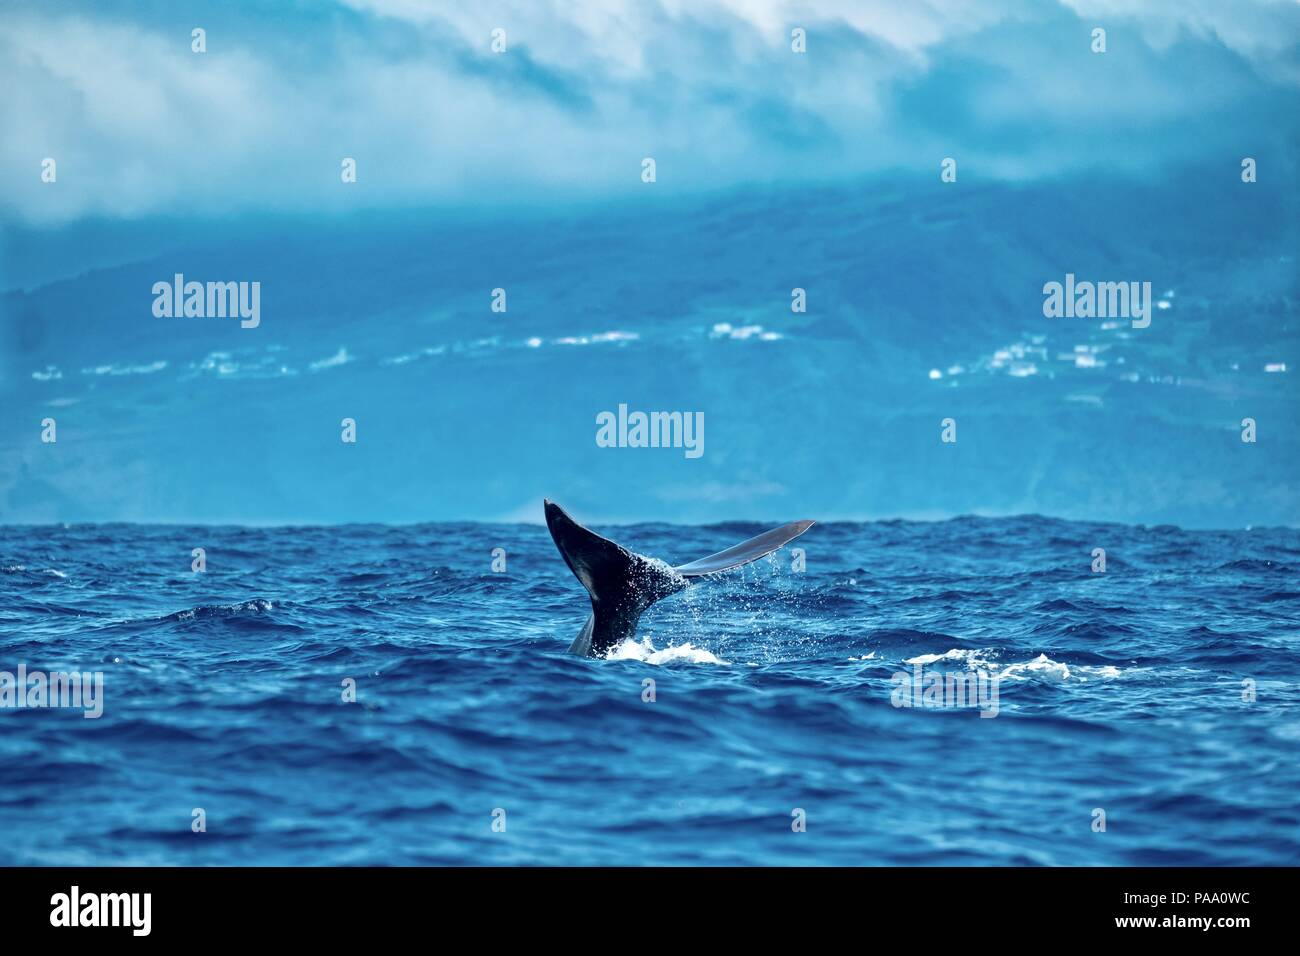 Water dripping from a sperm whale's tail on a cloudy day near Pico Island - Stock Image